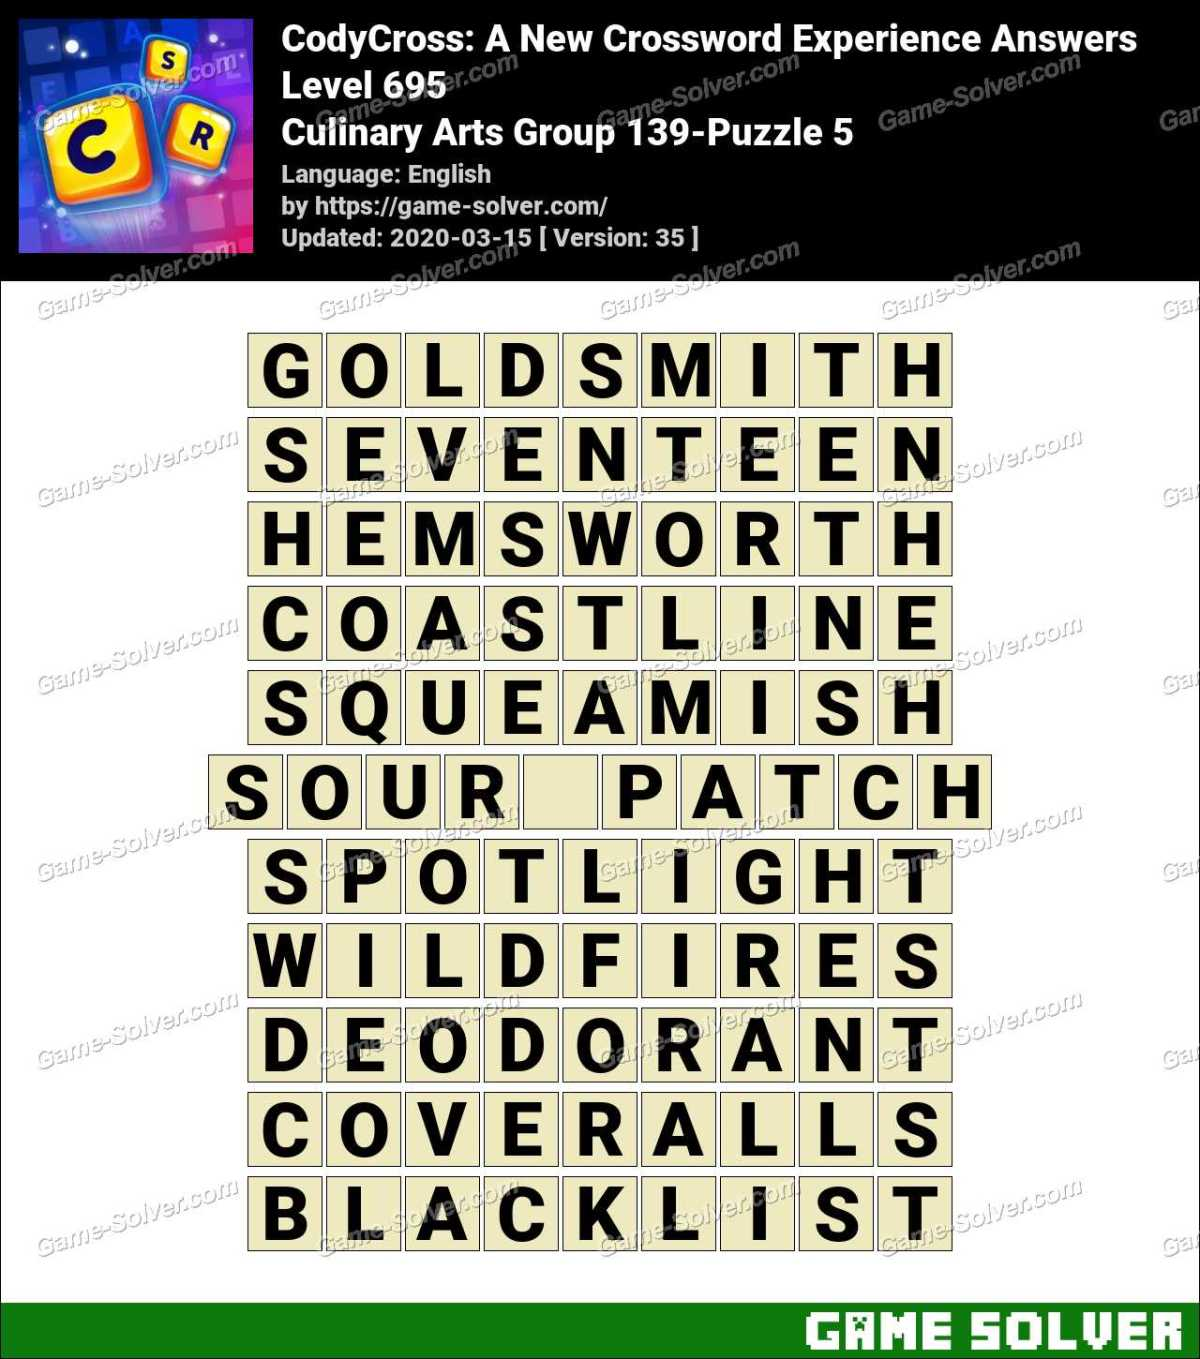 CodyCross Culinary Arts Group 139-Puzzle 5 Answers